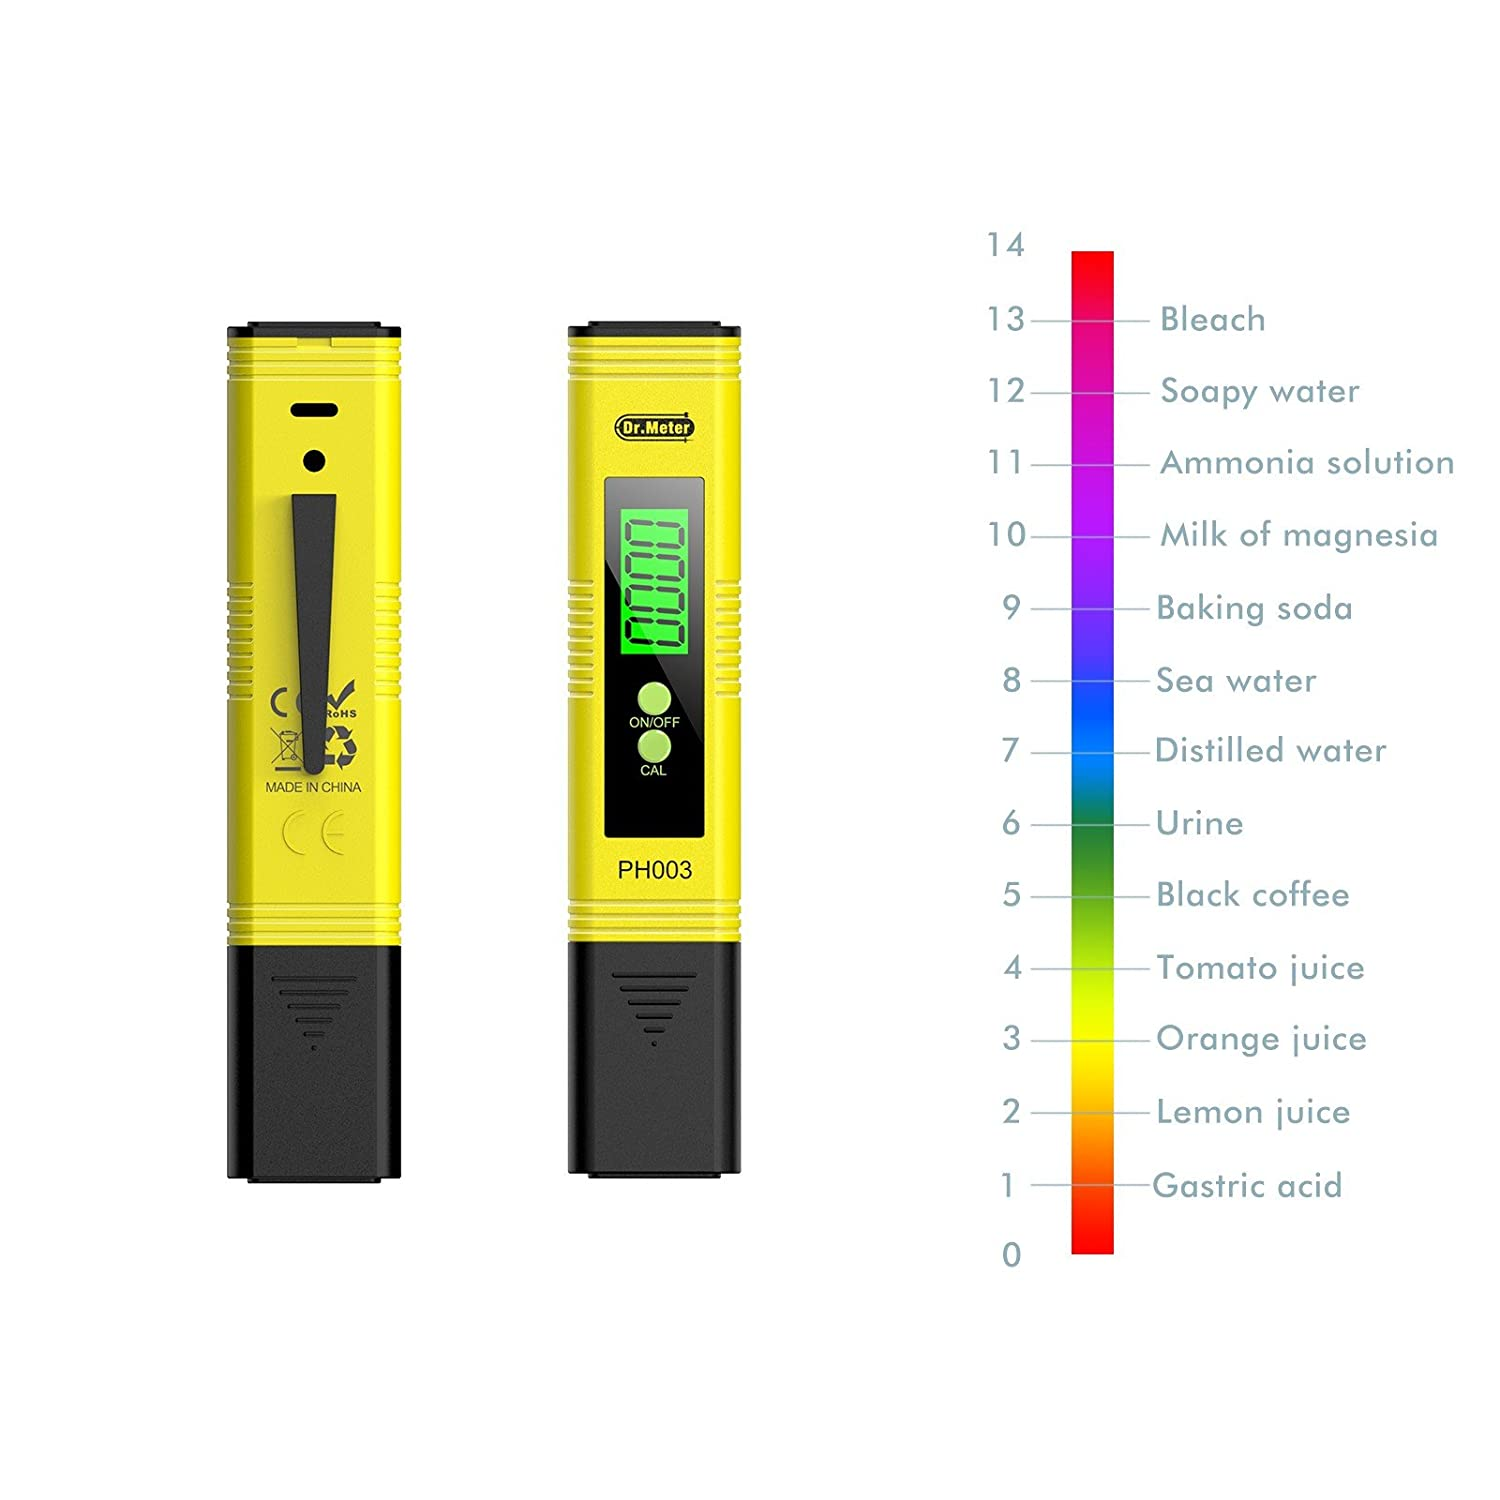 Amazon.com: Dr.meter PH003 Digital pH Meter pH Tester with pH buffer powder pH Test Strips Auto Calibration Button 0-14 pH Testing: Home Improvement